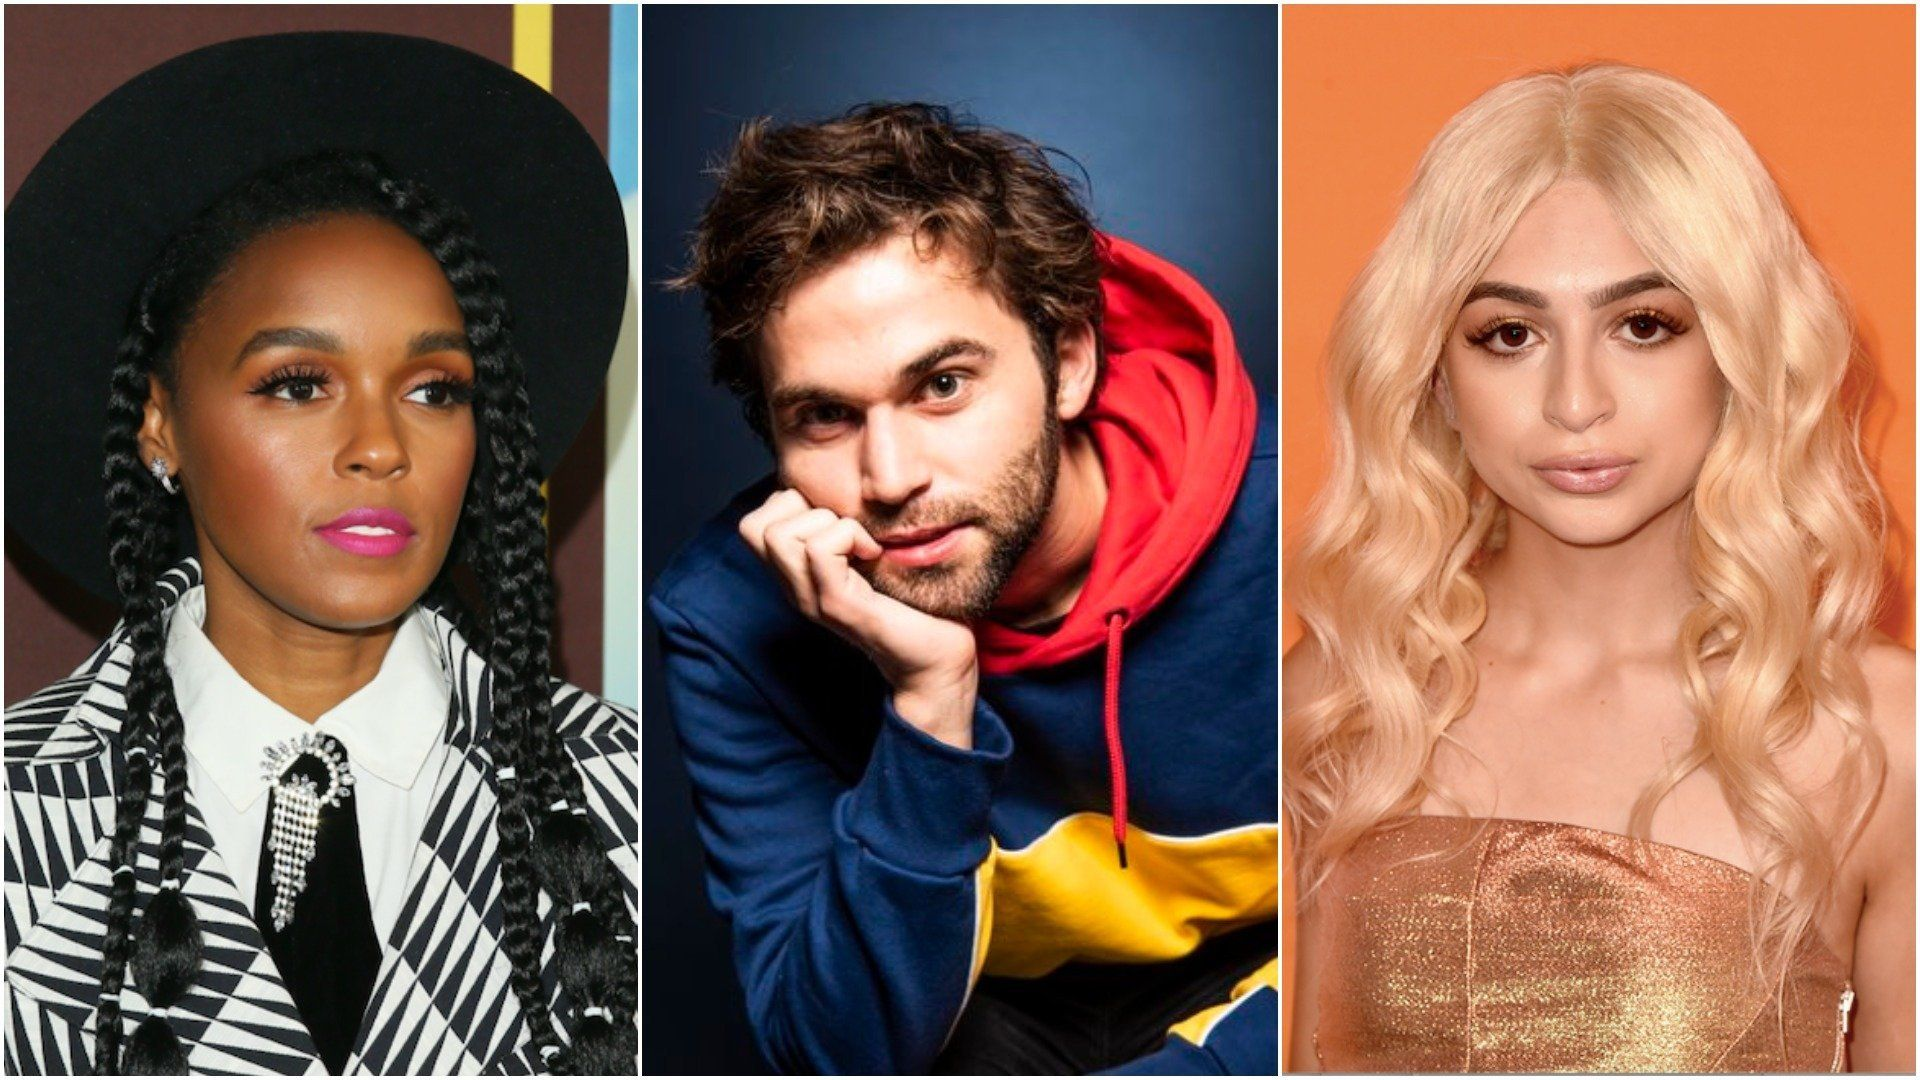 From left: Janelle Monáe, Jake Borelli and Josie Totah are among the celebrities to come out publicly as mem